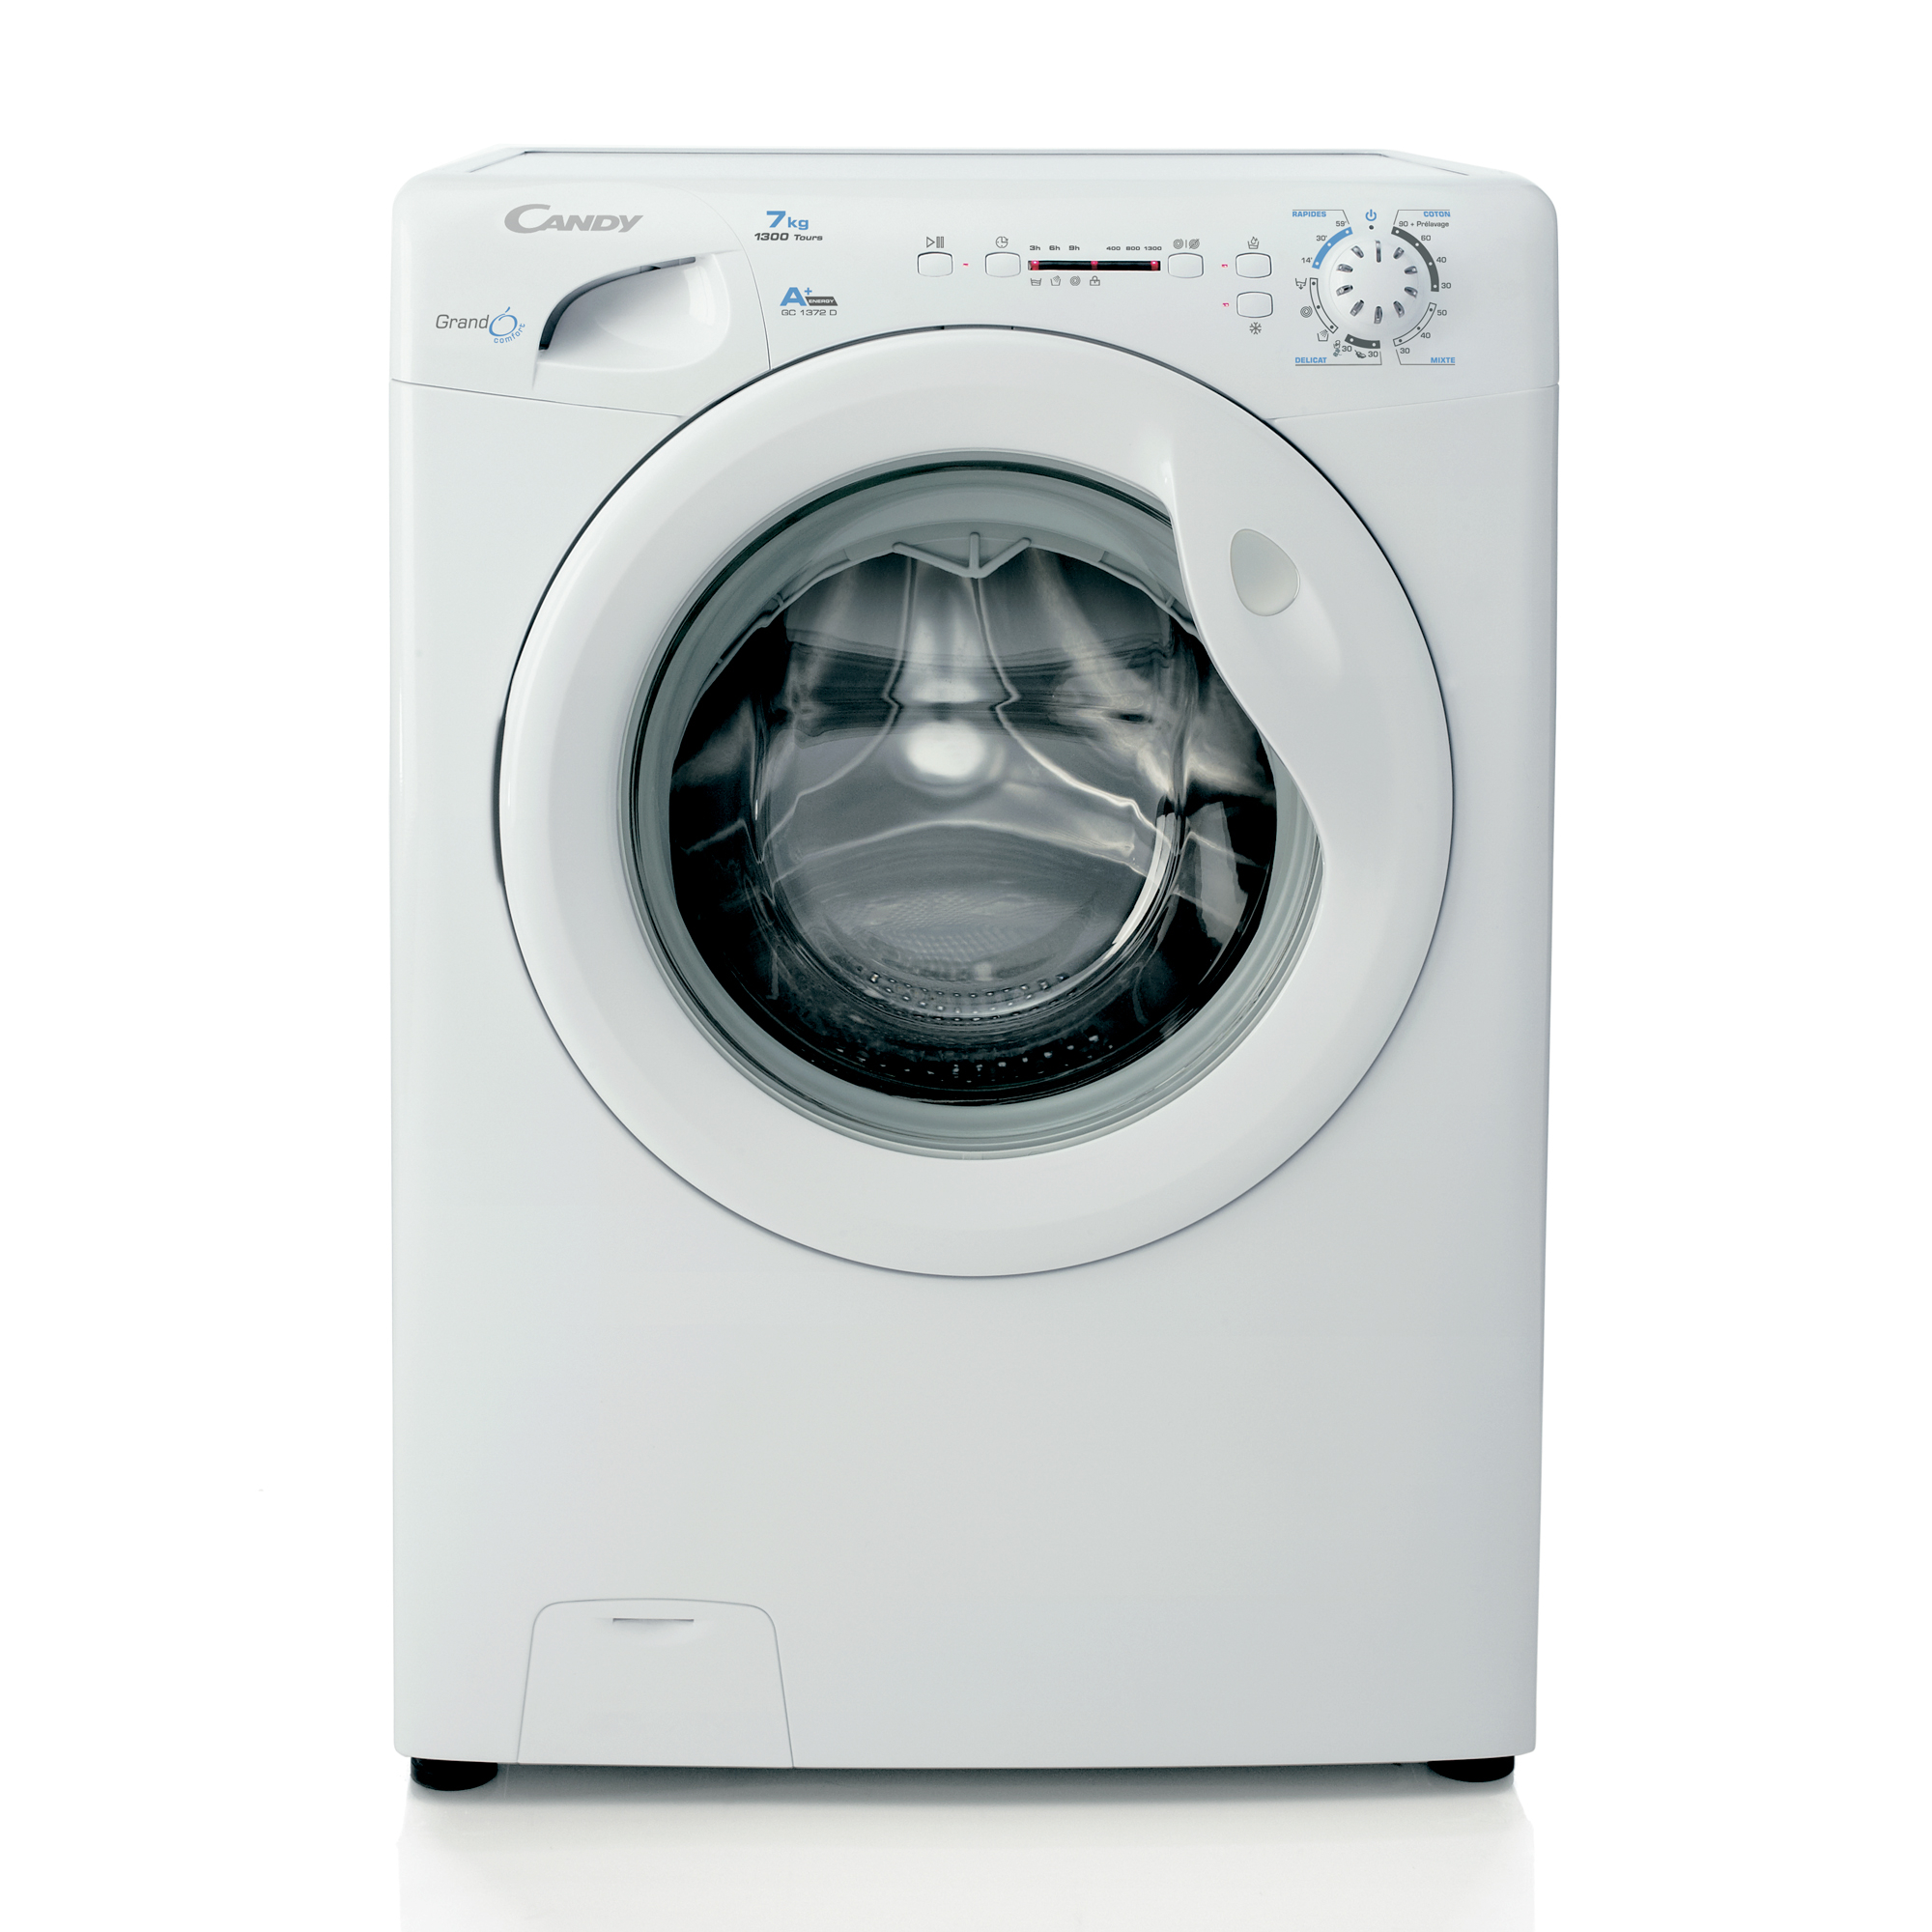 Meuble lave linge encastrable maison design for Meuble linge